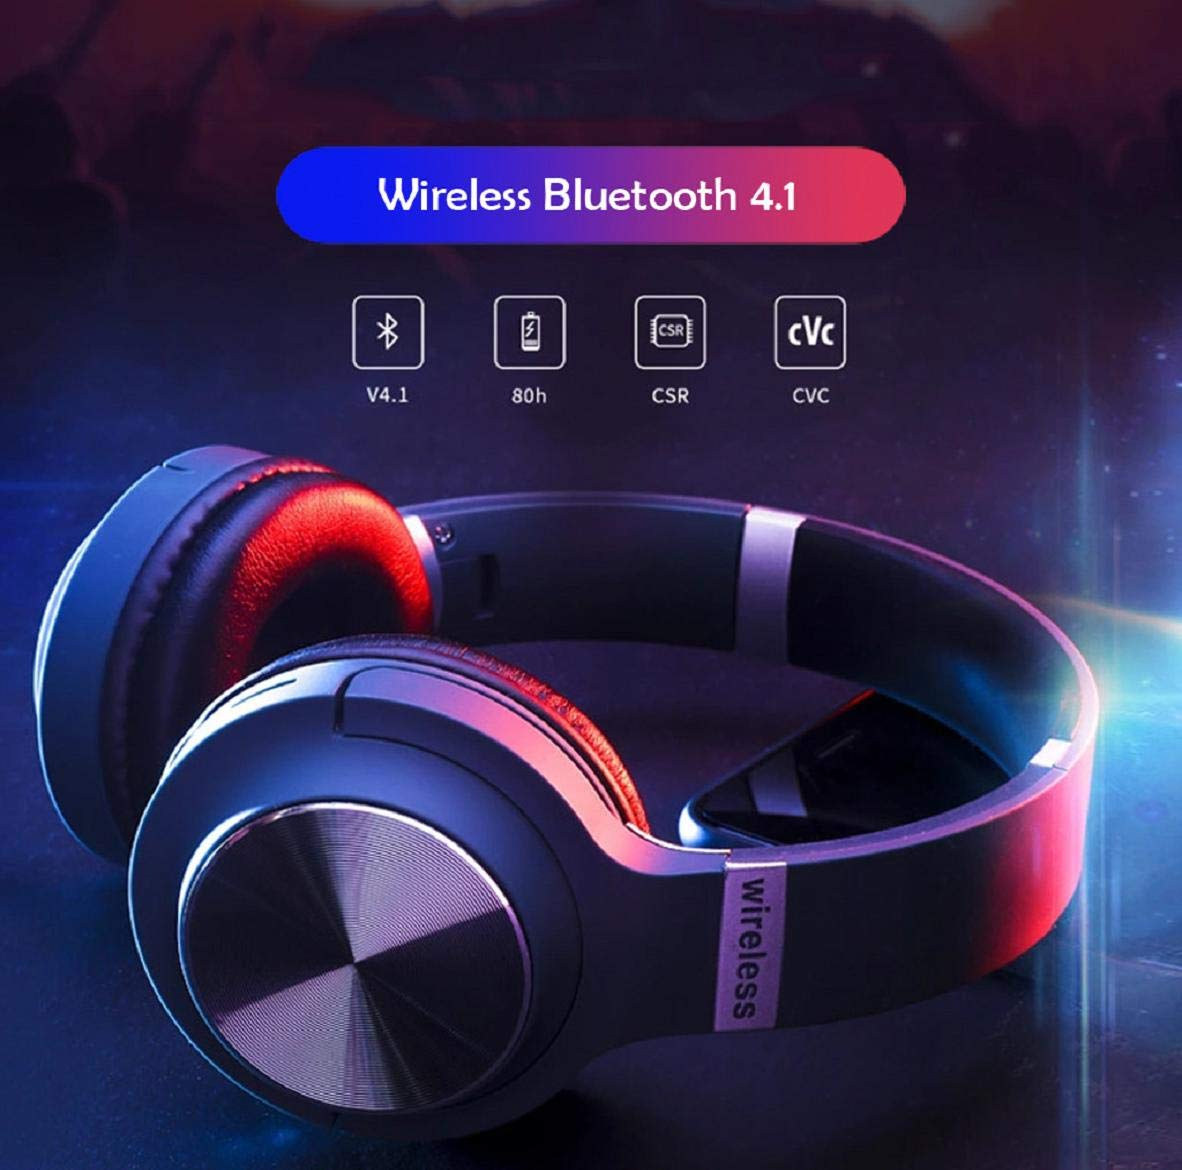 Boddenly Noise Cancelling Headphones Bluetooth Headphones with Mic Deep Bass Wireless Headphones Over Ear, Comfortable Protein Earpads, Playtime for Travel Work, HI-FI Stereo